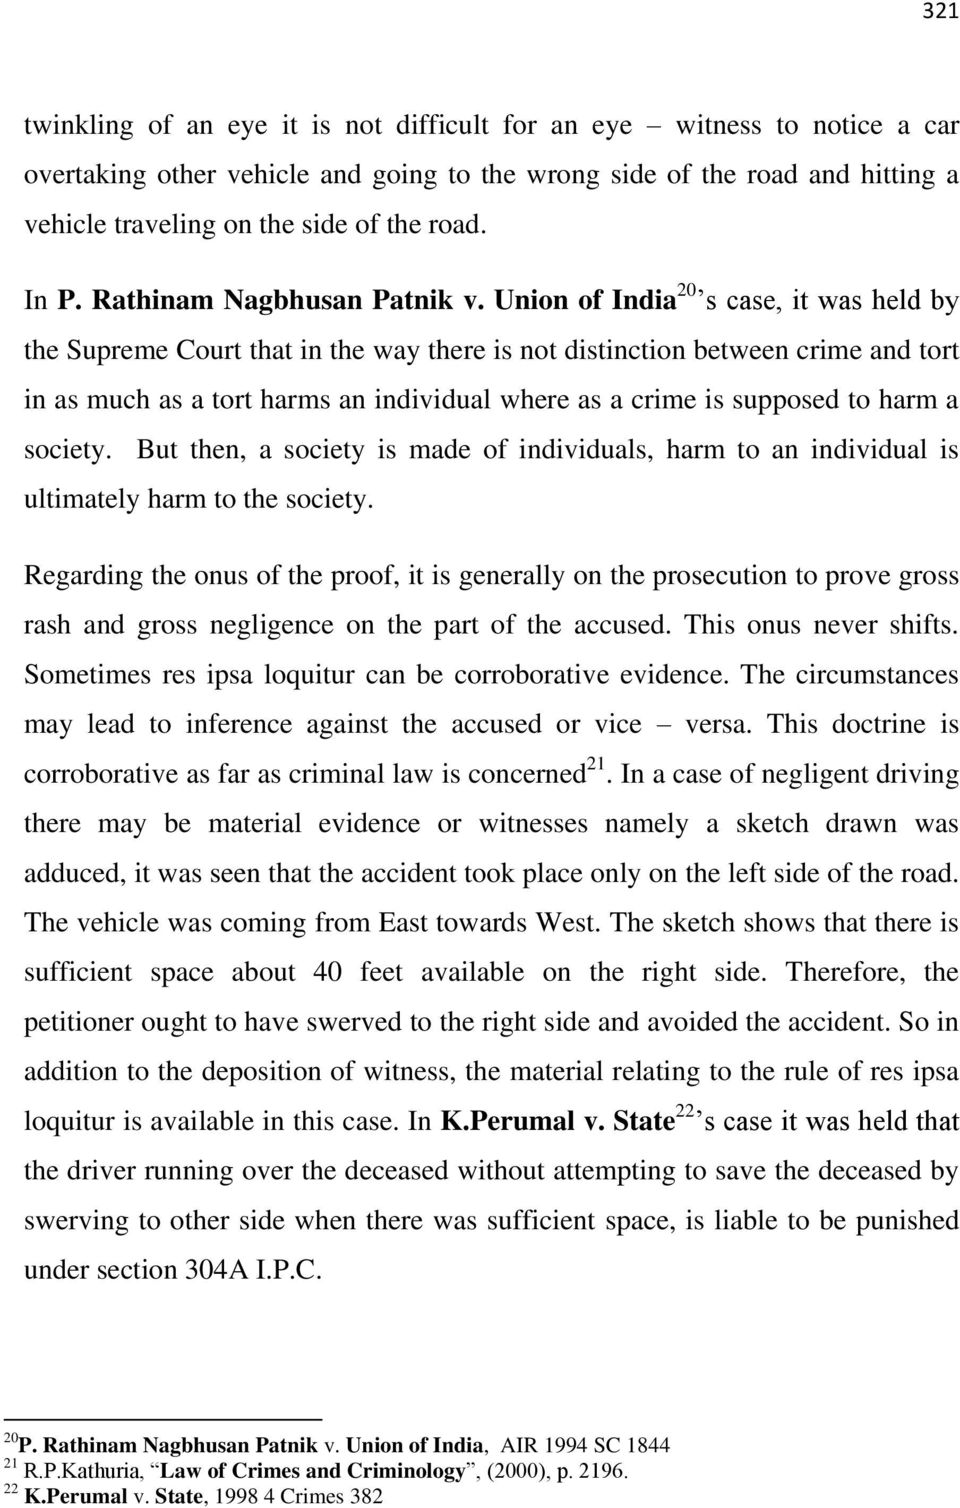 Union of India 20 s case, it was held by the Supreme Court that in the way there is not distinction between crime and tort in as much as a tort harms an individual where as a crime is supposed to